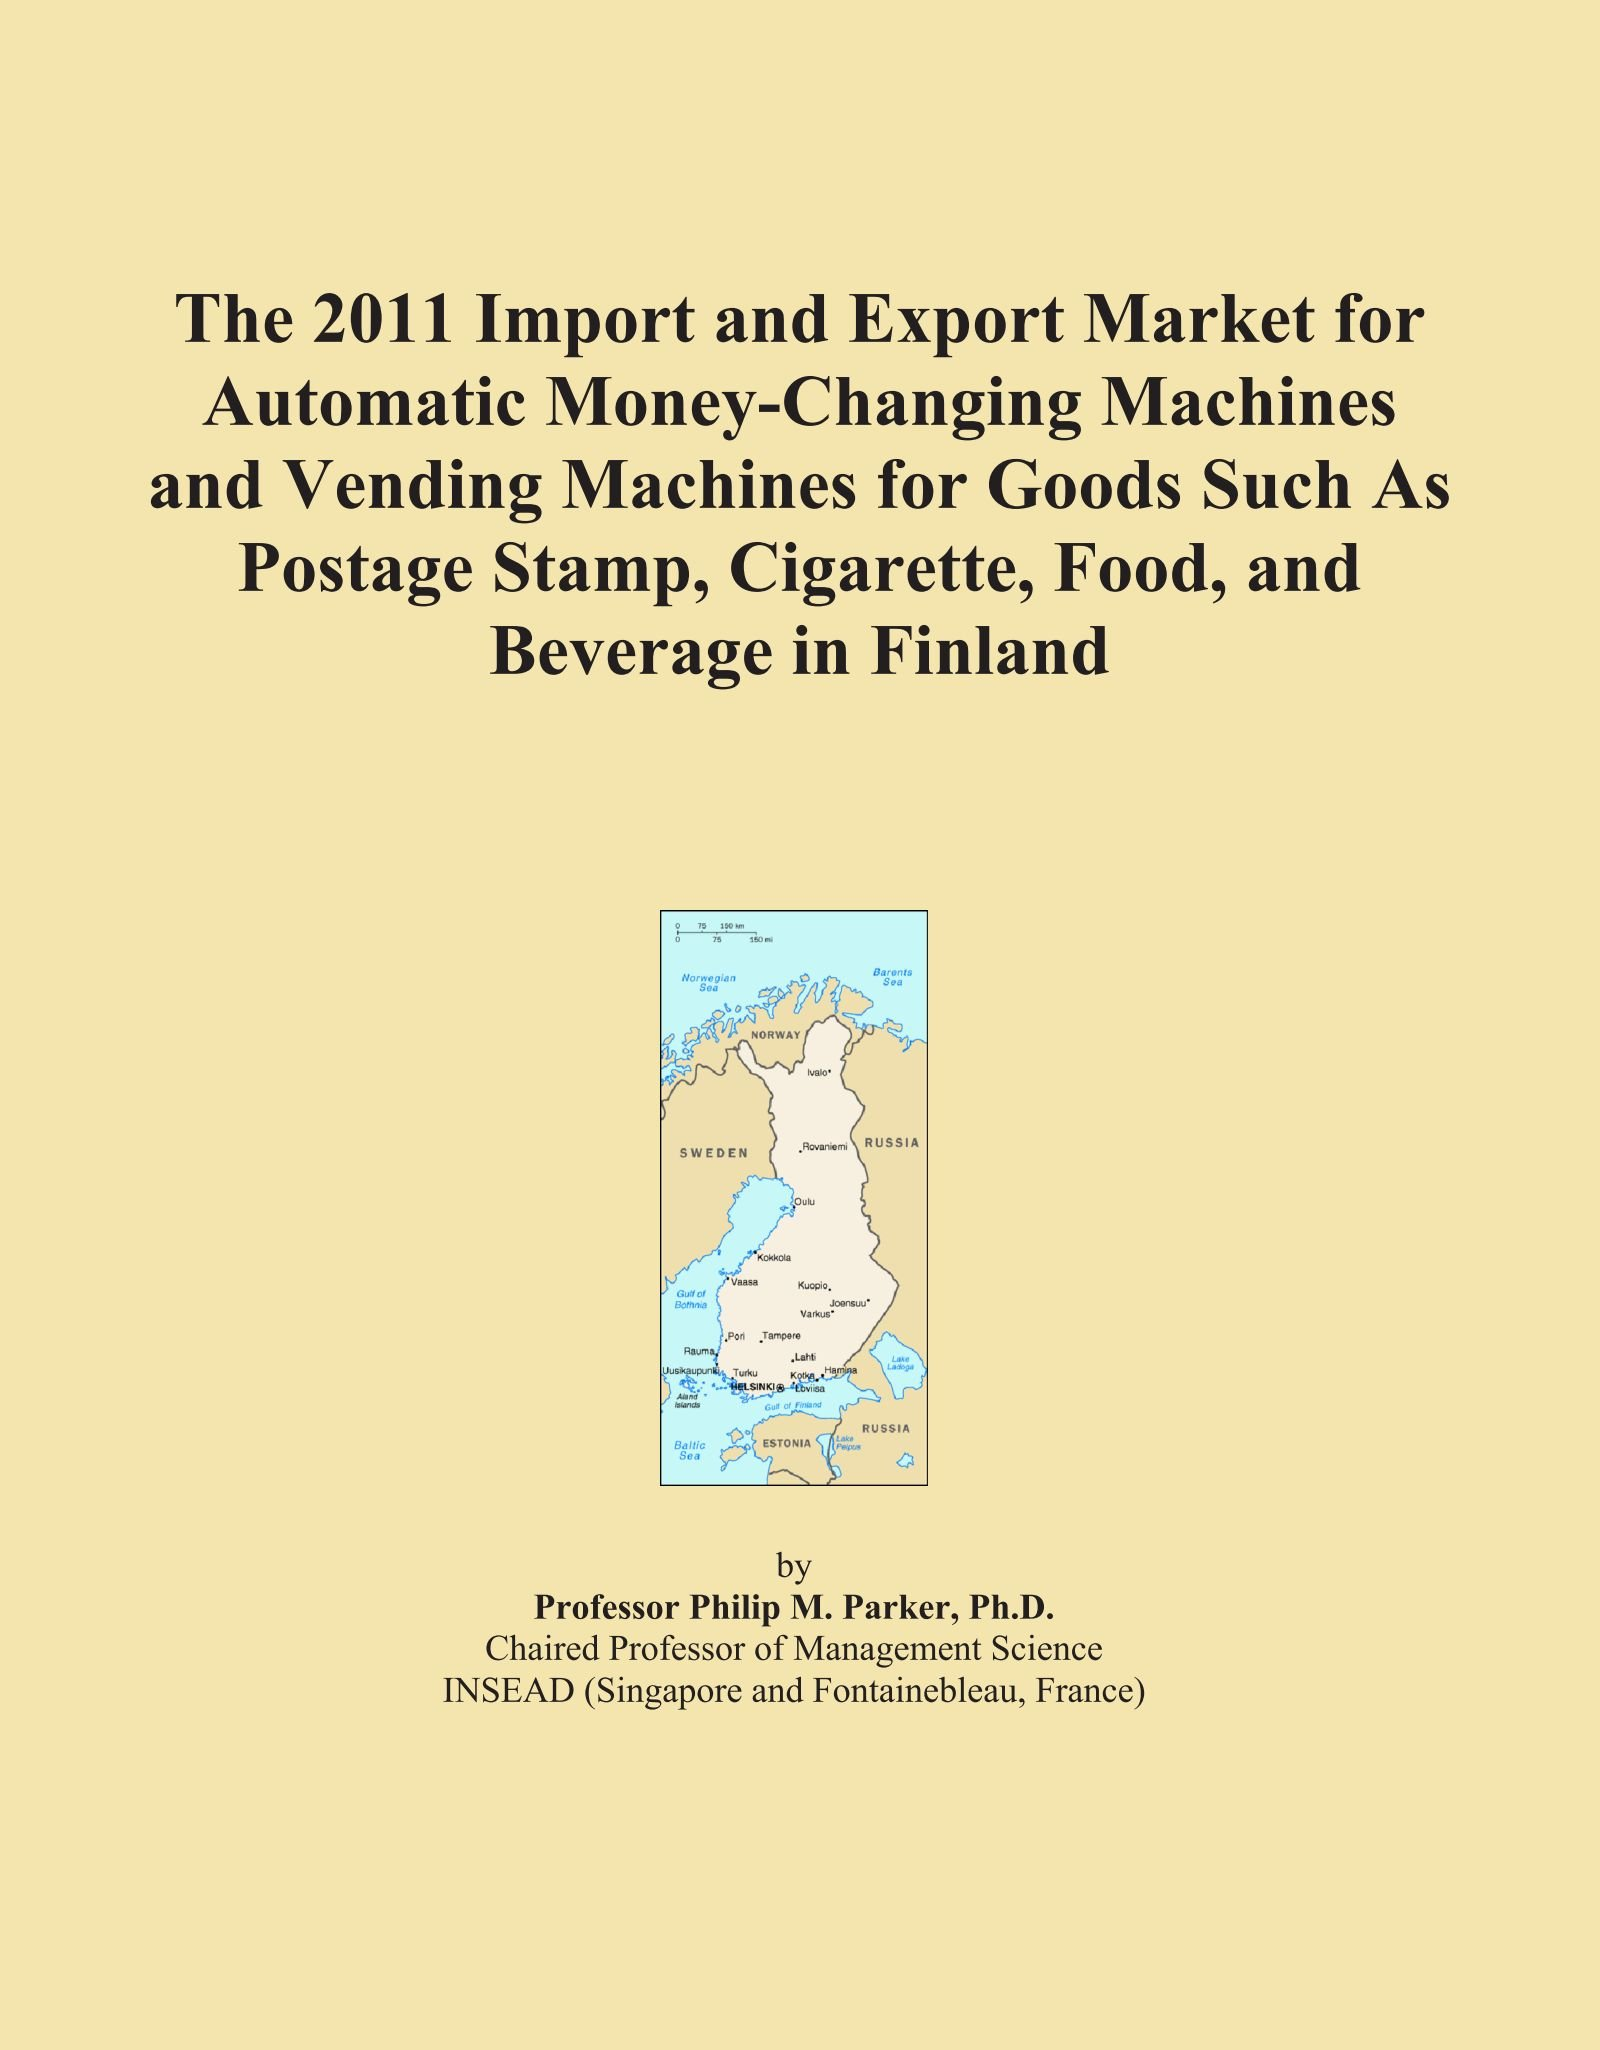 Download The 2011 Import and Export Market for Automatic Money-Changing Machines and Vending Machines for Goods Such As Postage Stamp, Cigarette, Food, and Beverage in Finland PDF